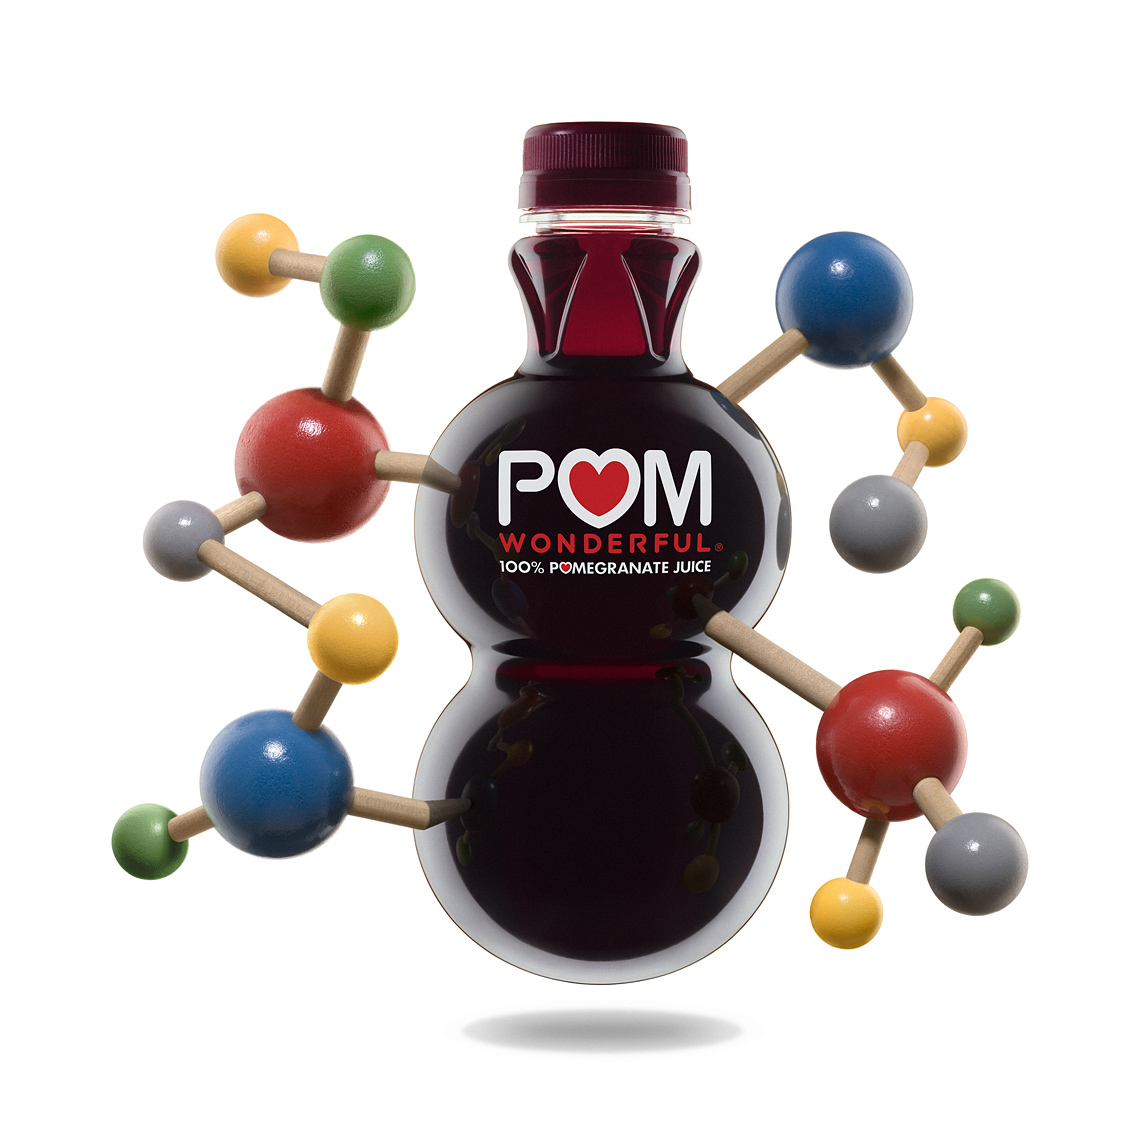 POM Wonderful Campaign